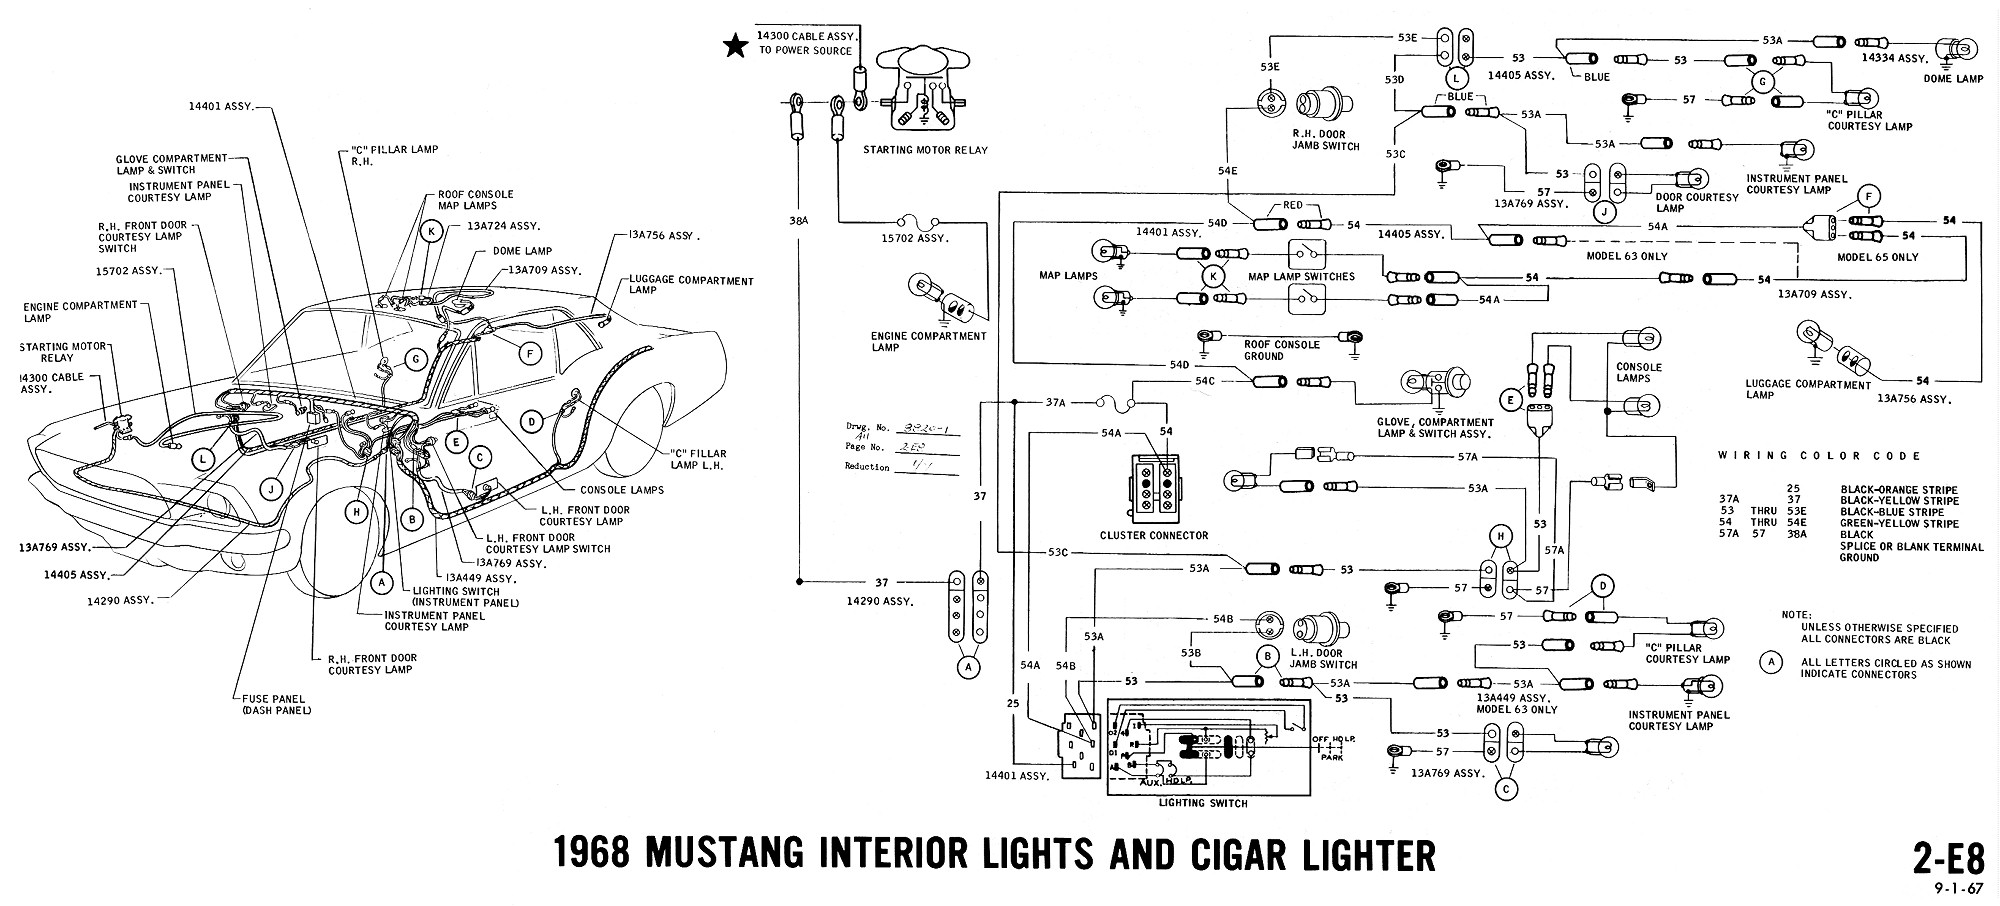 Mustang Wiring Diagram Interior Lights Cigar Lighter moreover E I besides Console Wiring Diagram moreover Mustang Classic Fuse Box Diagram also D Mustang Alternator Wiring Img. on 1966 mustang fuse box diagram